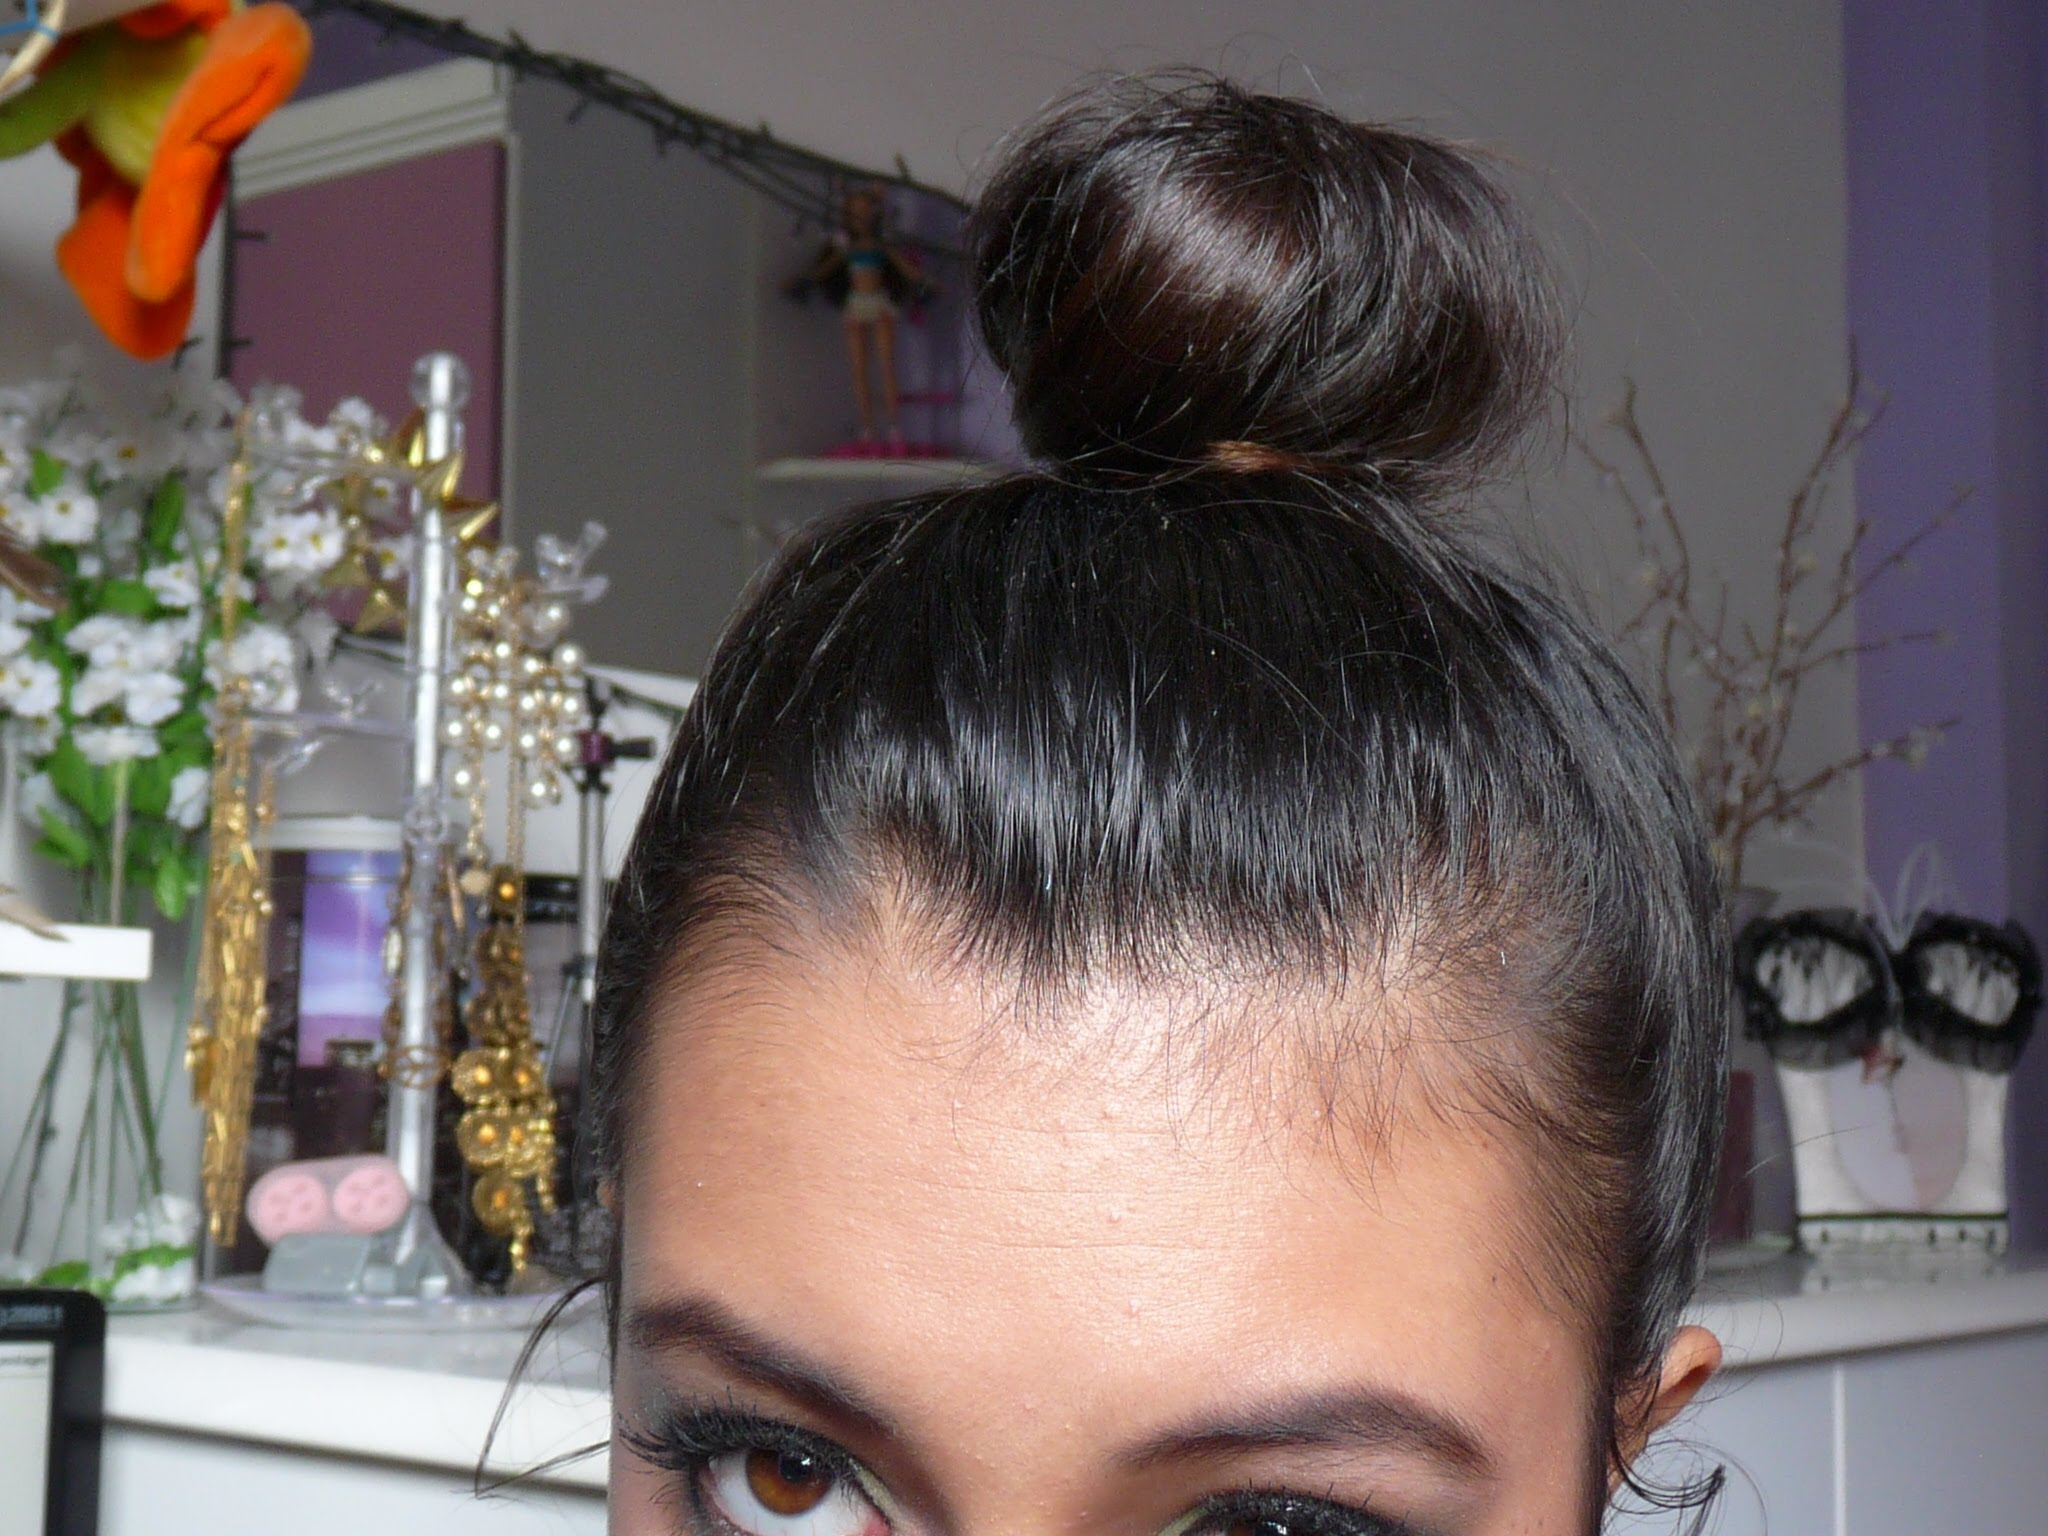 Miley cyrus messy updo hairstyles weekly.